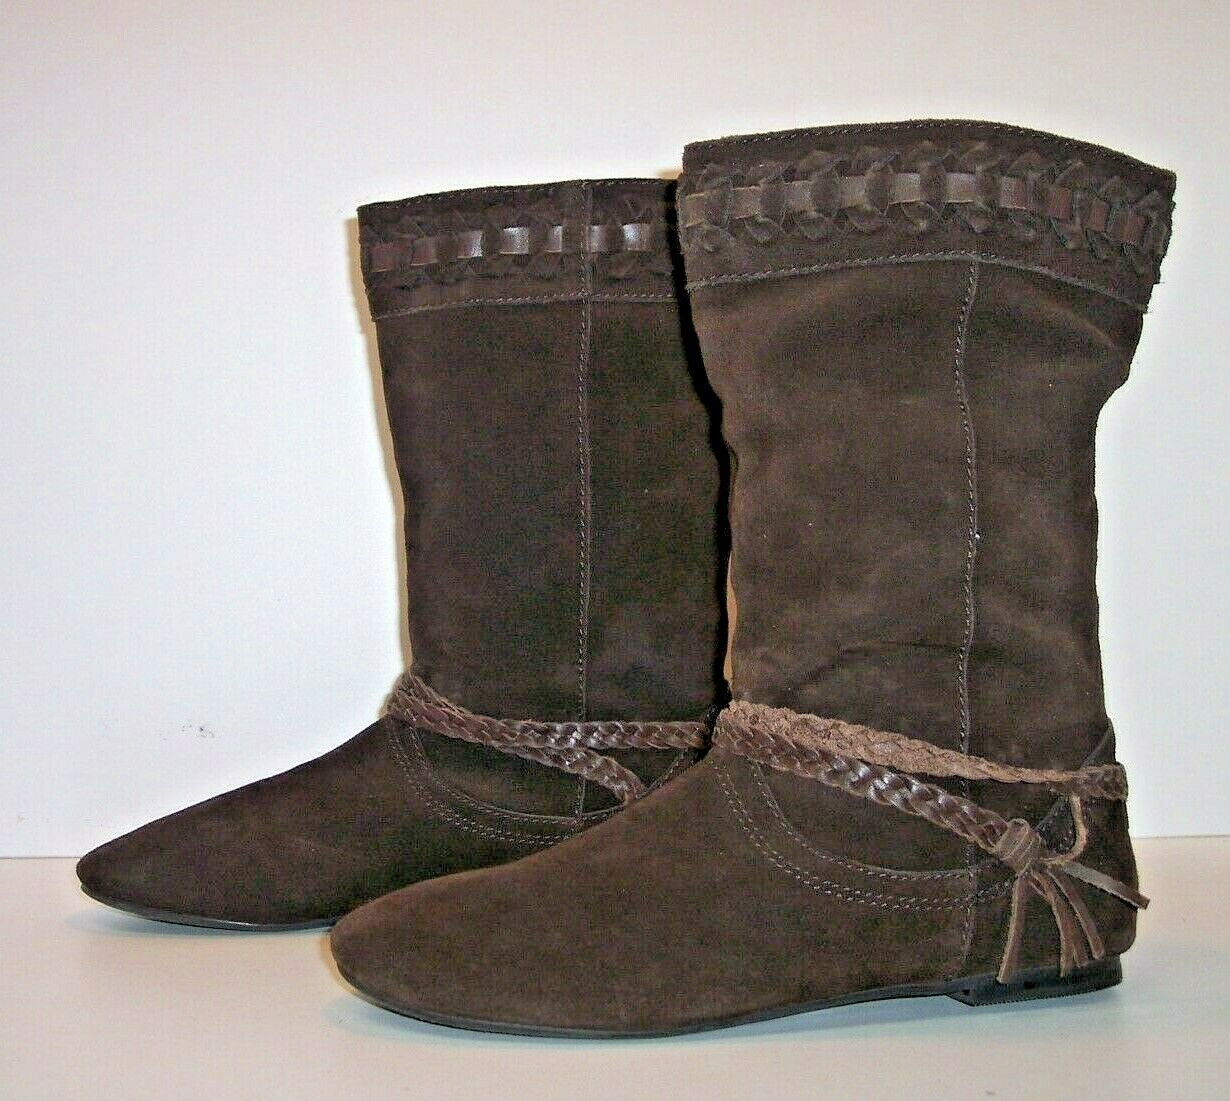 ZODIAC Brown Suede Mid-Calf Casual Boots Women's Size 6.5